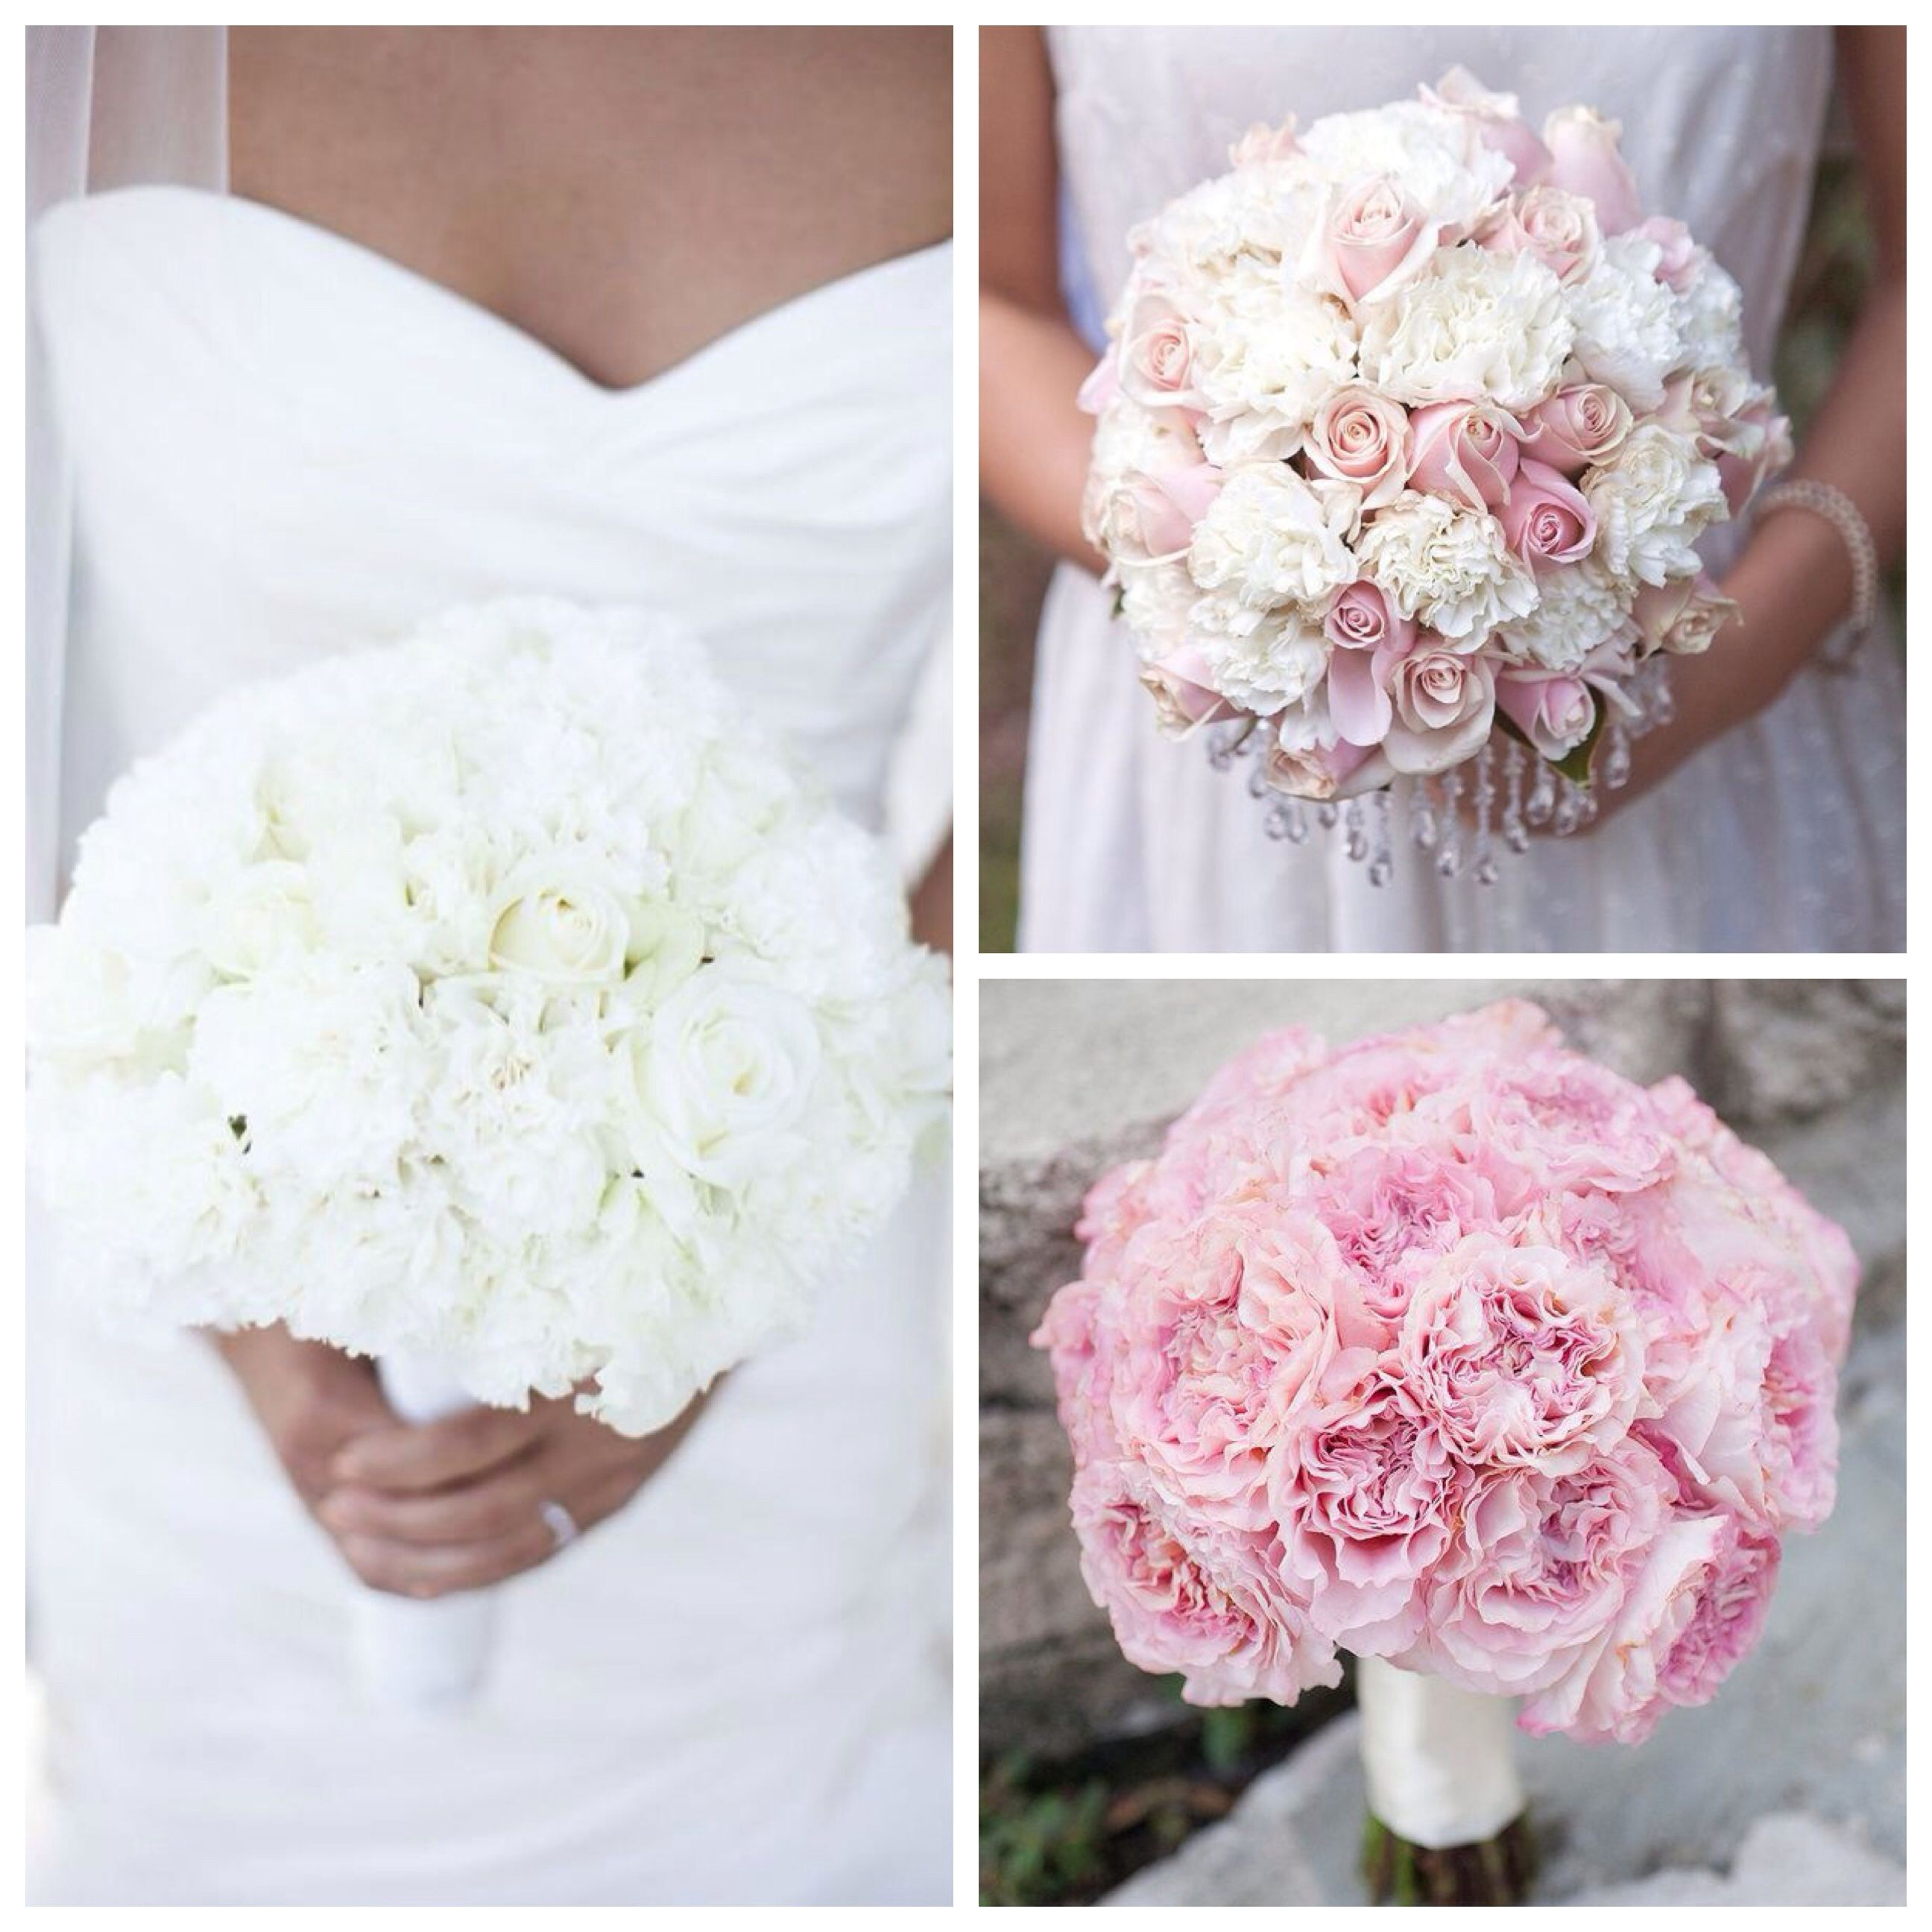 Pin by Victoria Svensson on Blush and Champagne/gold wedding ...